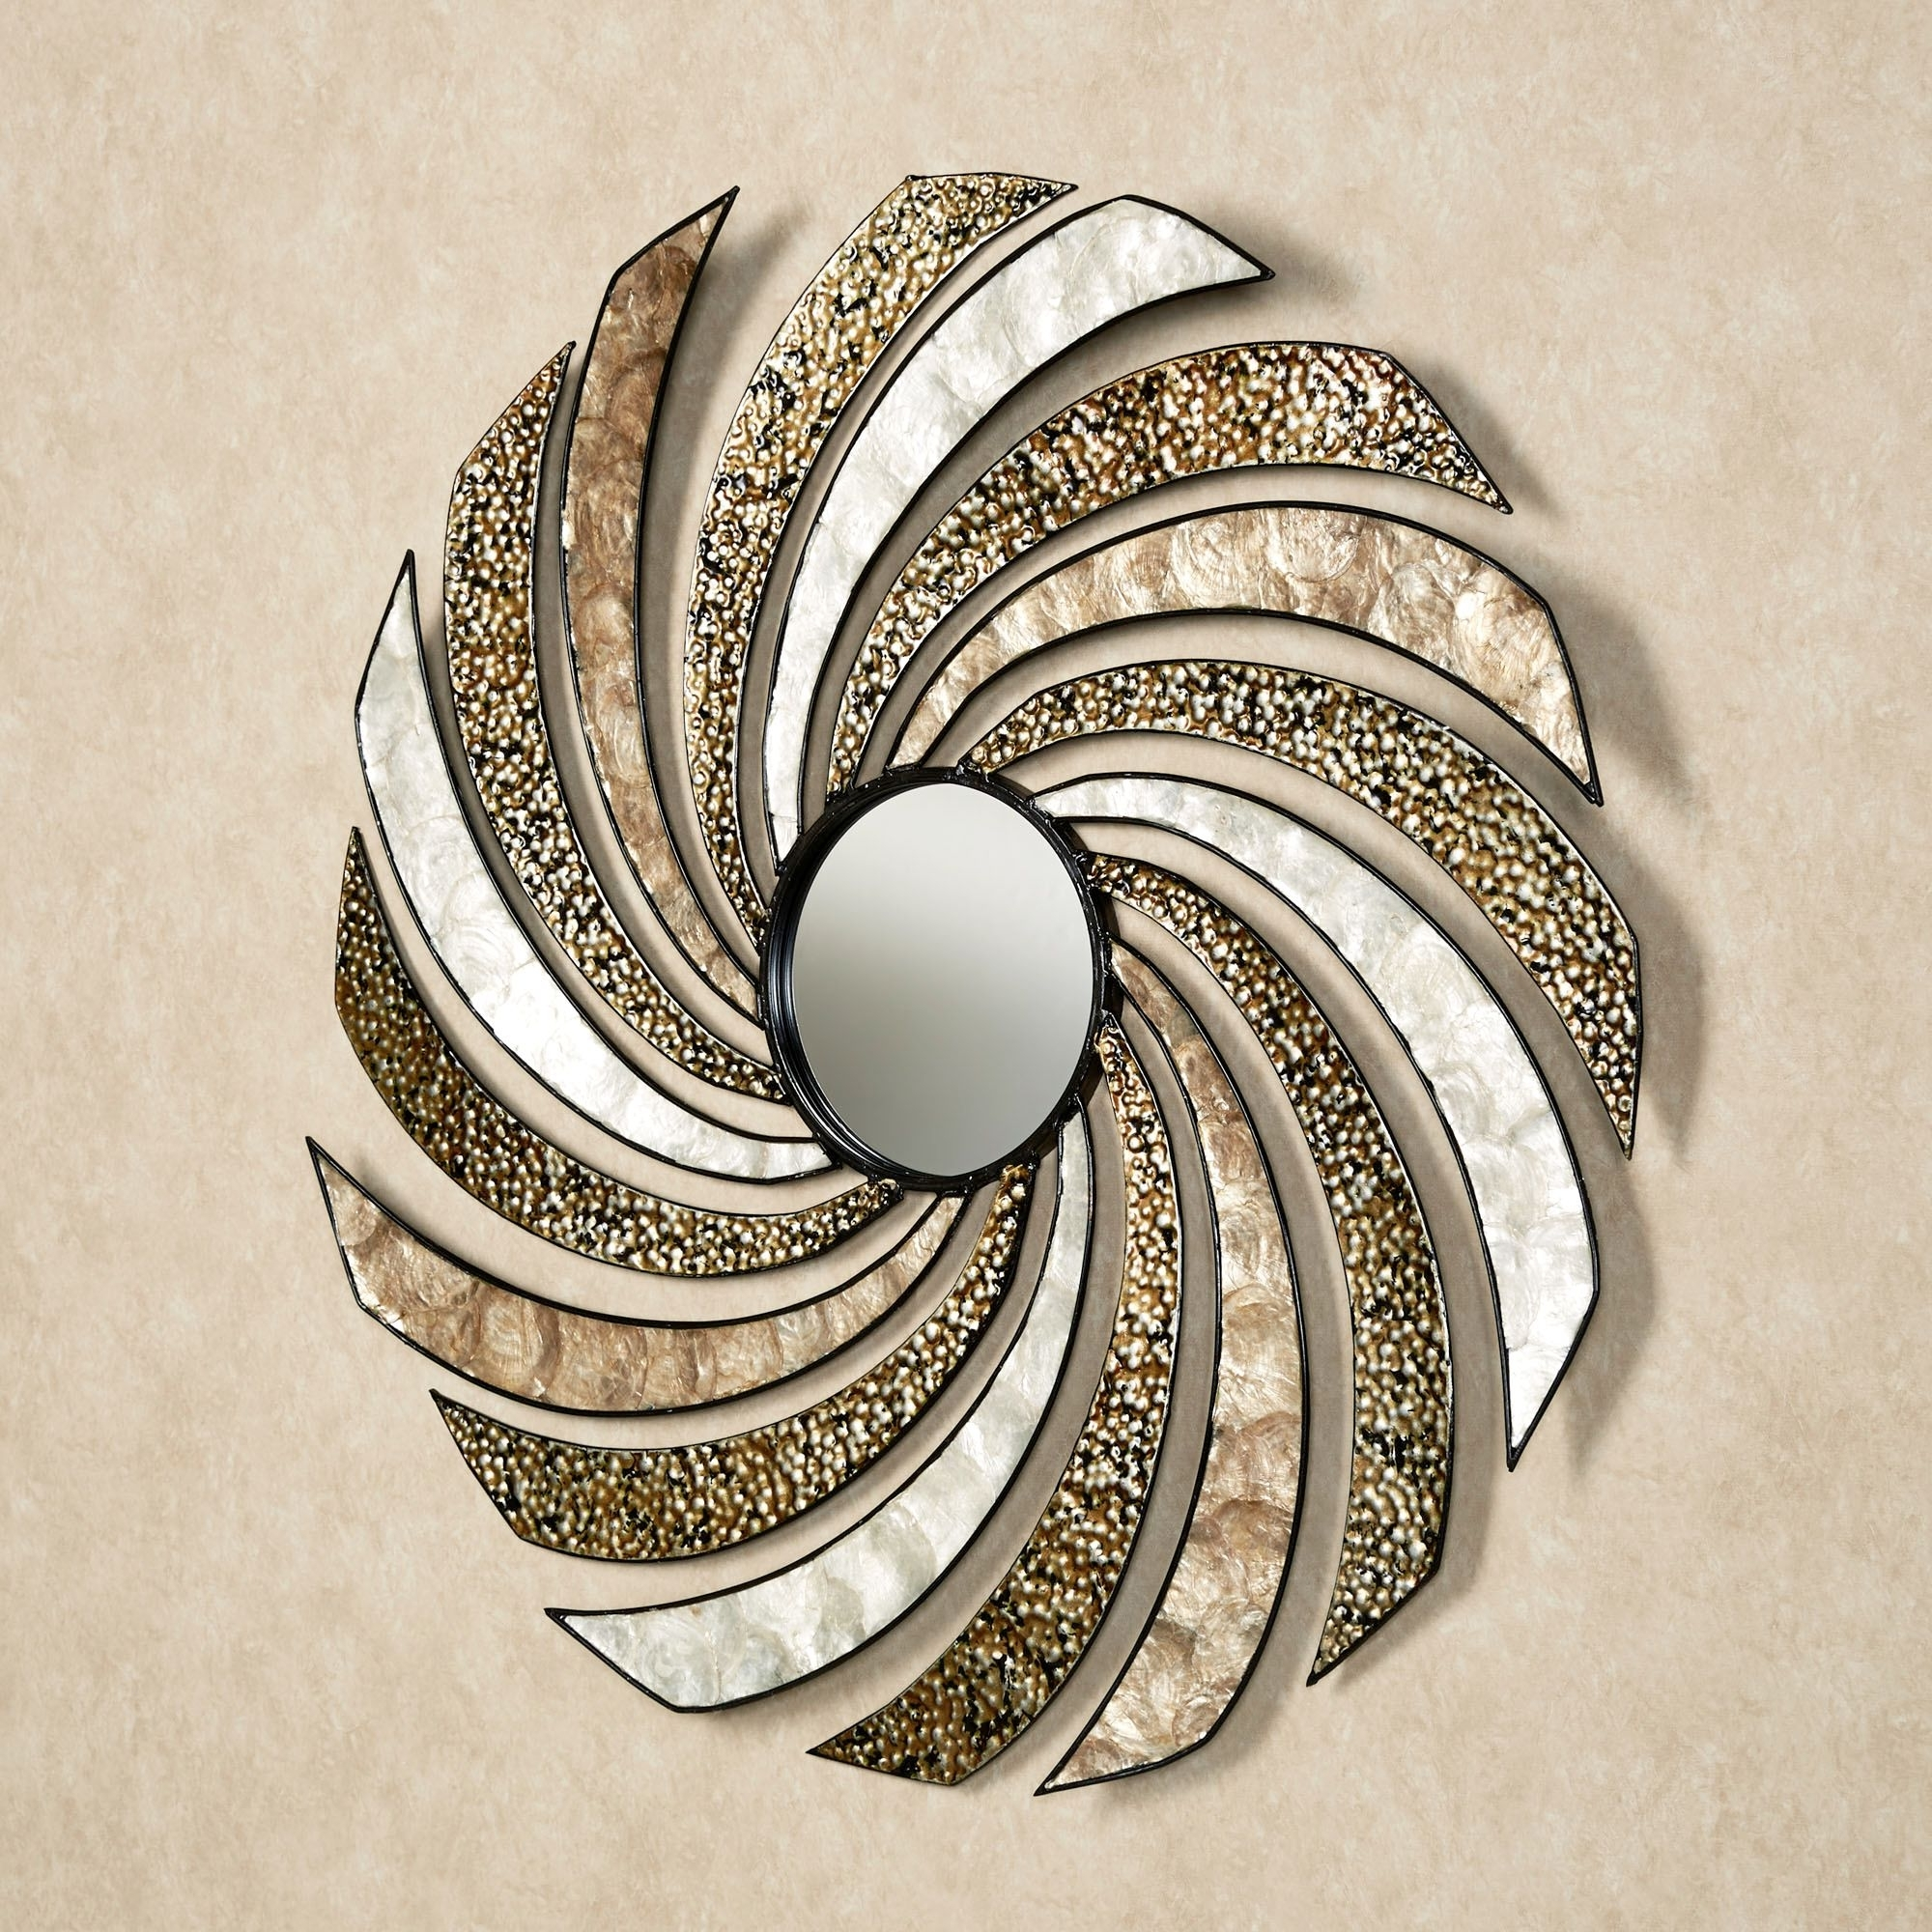 Wall Art Decor: Pasquale Swirl Mirrored Wall Art Metal Spinning In Preferred Swirl Metal Wall Art (View 13 of 15)